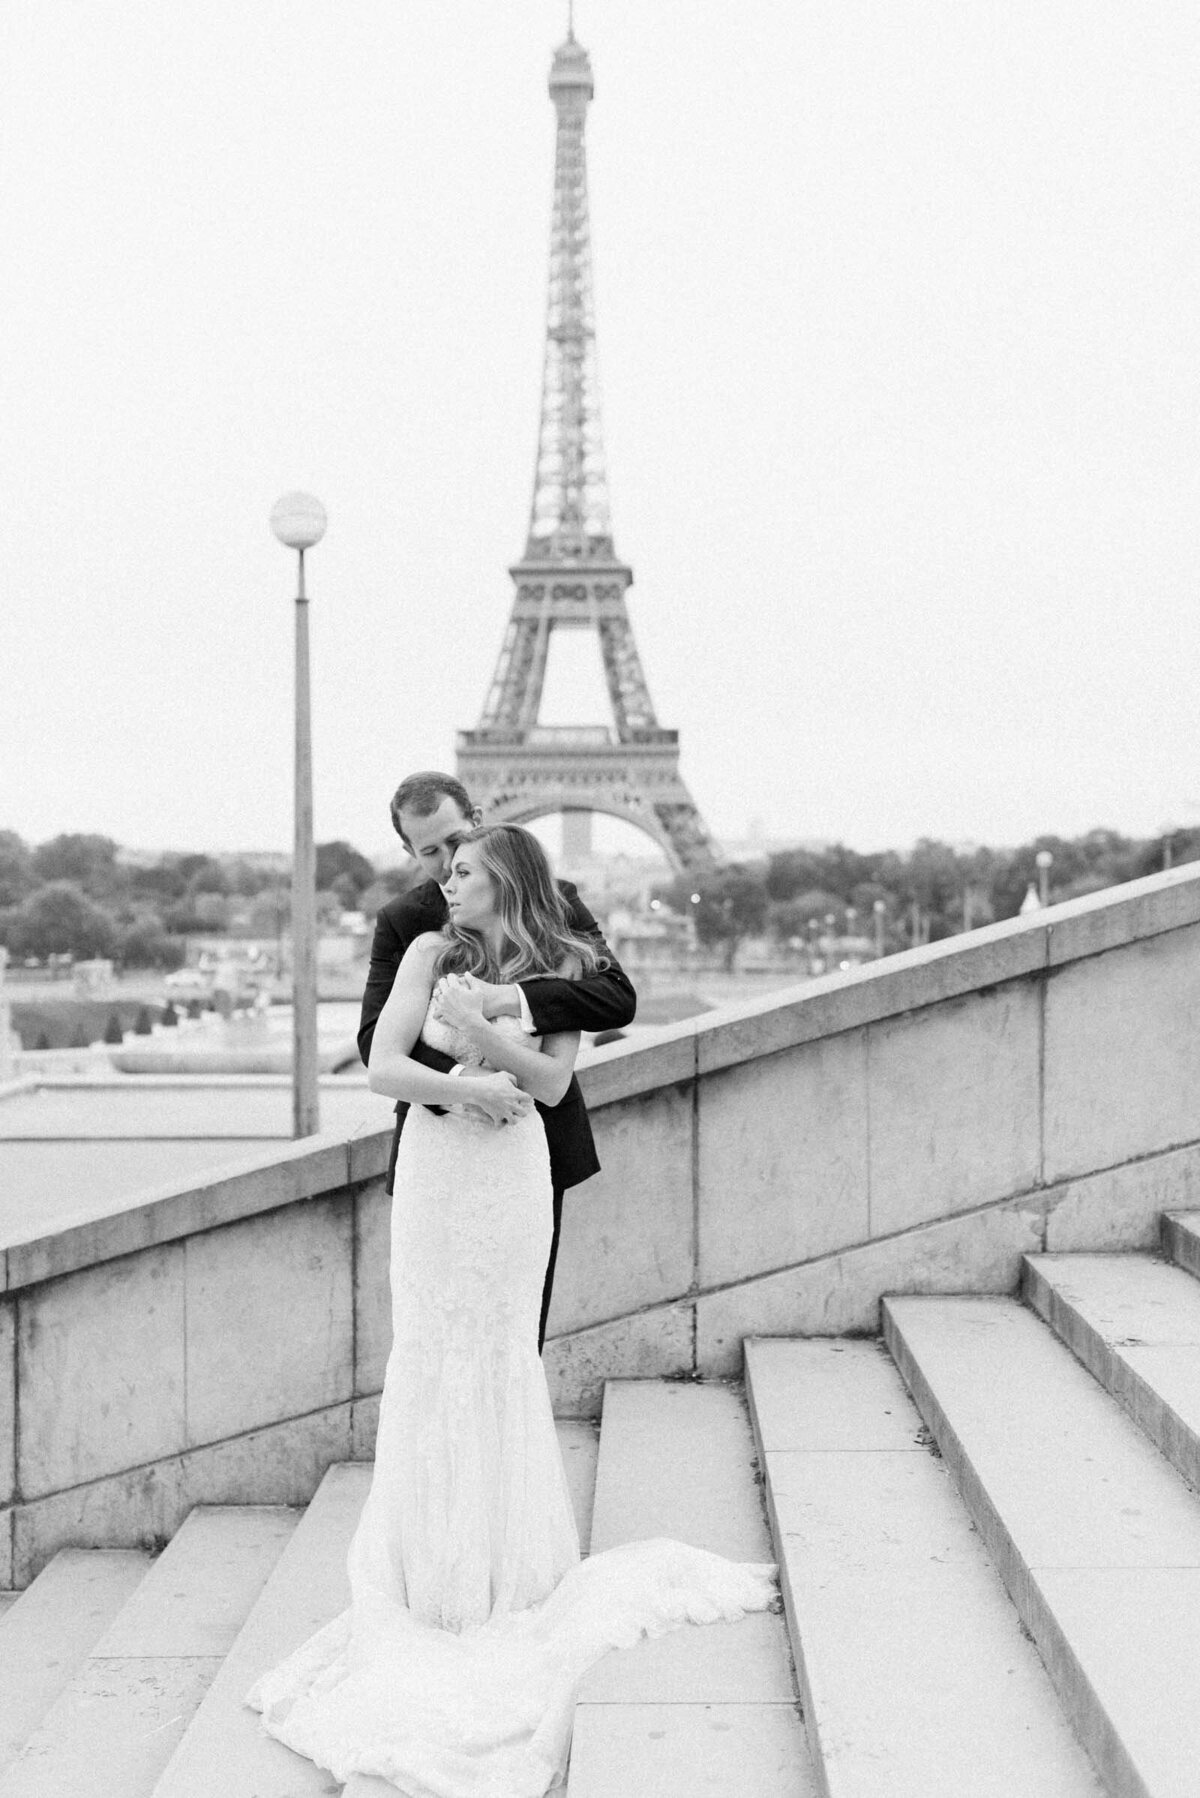 marcelaploskerphotography-paris_wedding-82